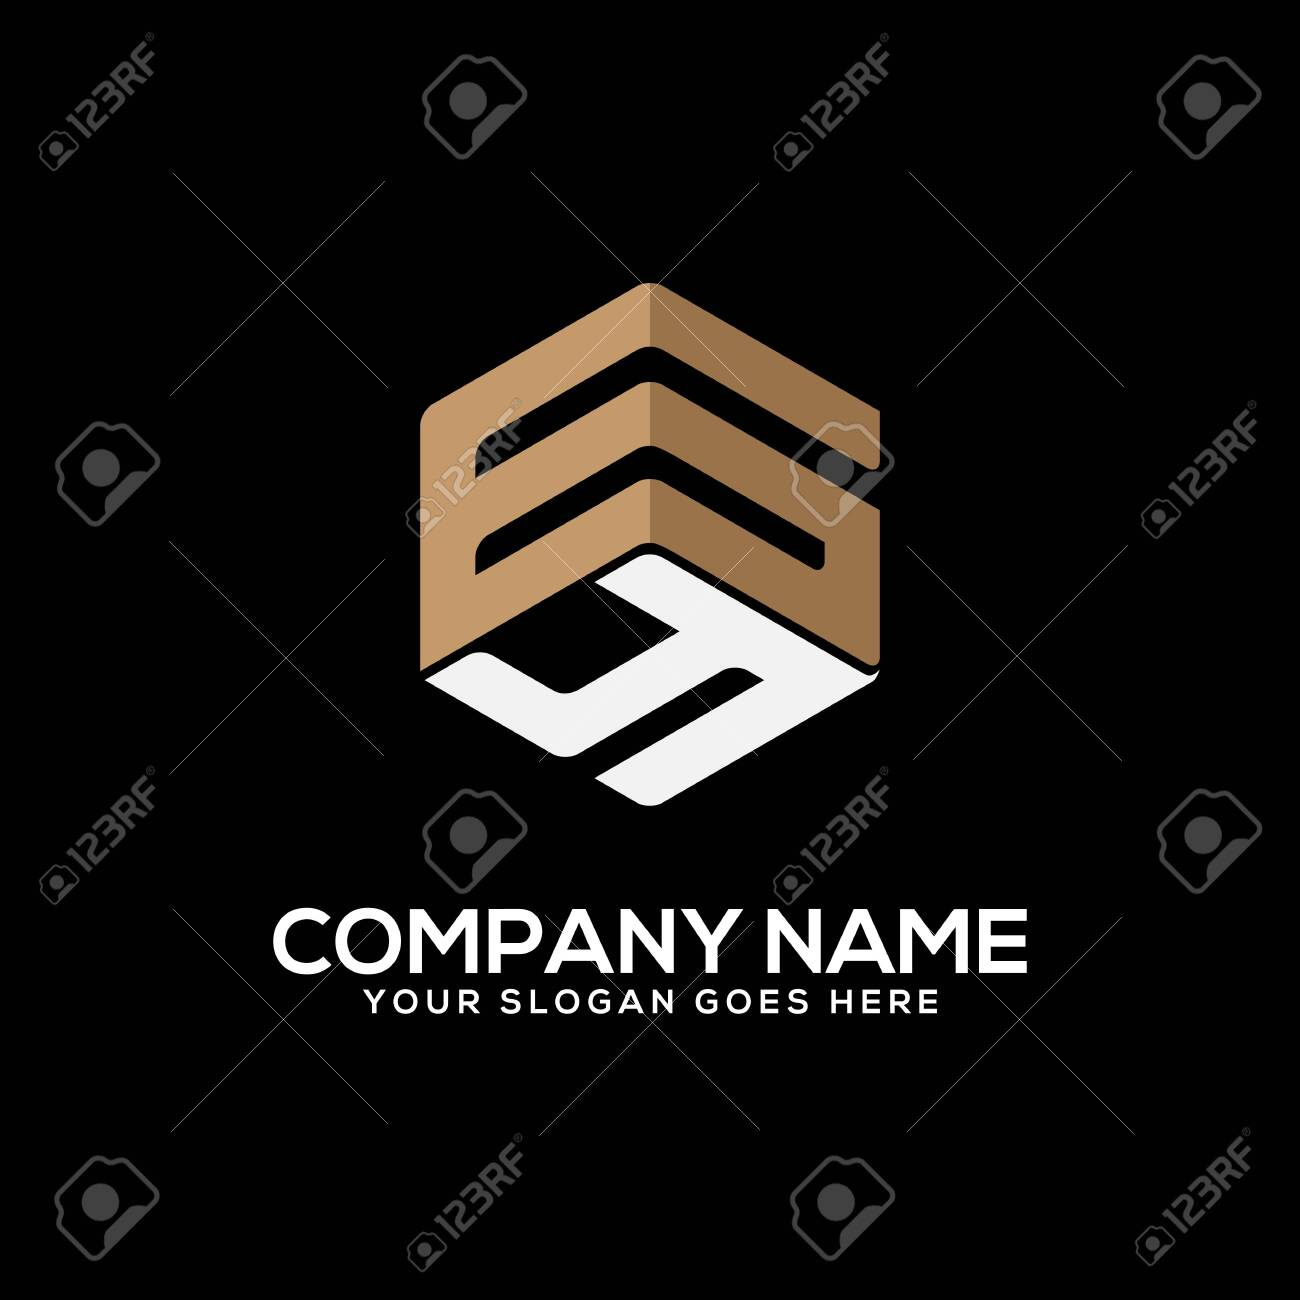 GY initial letter Logo Inspiration, G and Y combination logo vector with hexagonal idea - 129791441